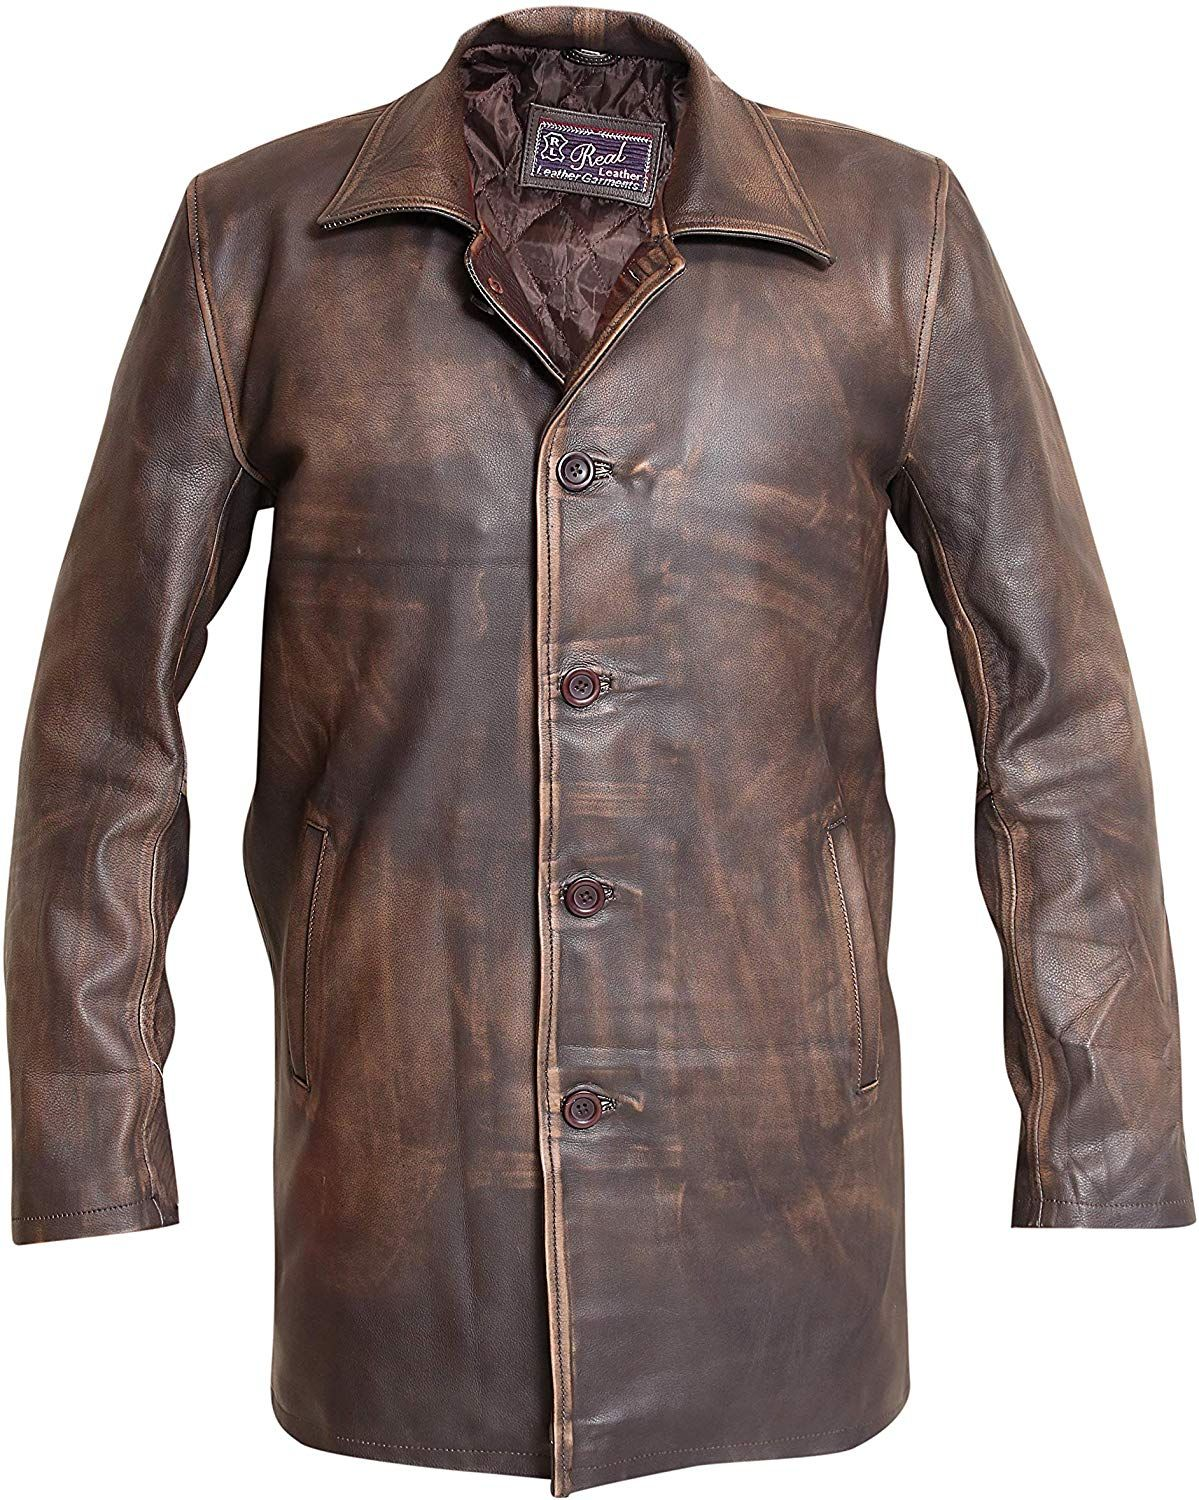 Dean Winchester Supernatural Distressed Brown Real Cowhide Leather Jacket Coat Xs At Amazon Men S Clothing Store Leather Jacket Real Cowhide Cowhide Leather [ 1500 x 1199 Pixel ]